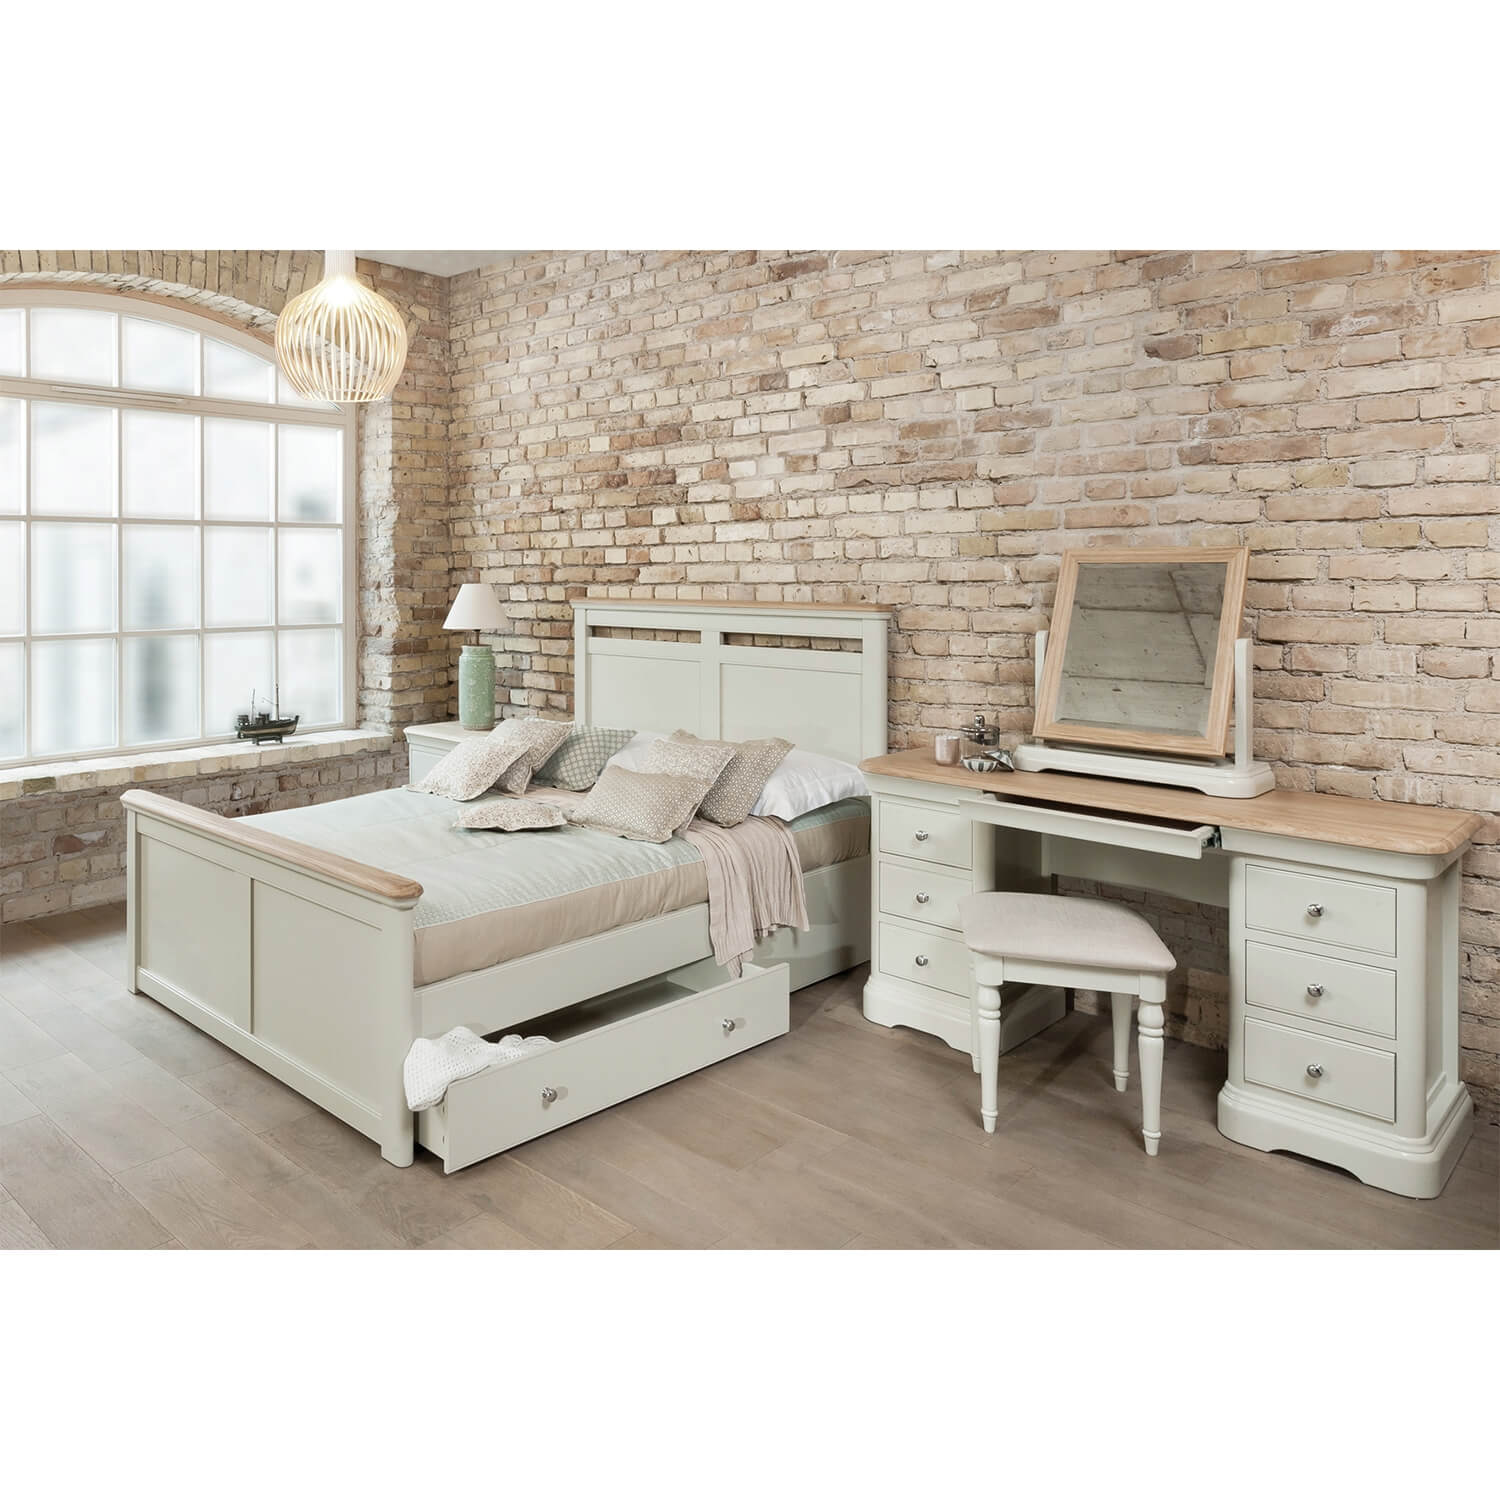 Image of Casa Cherbourg Bed With Storage, King